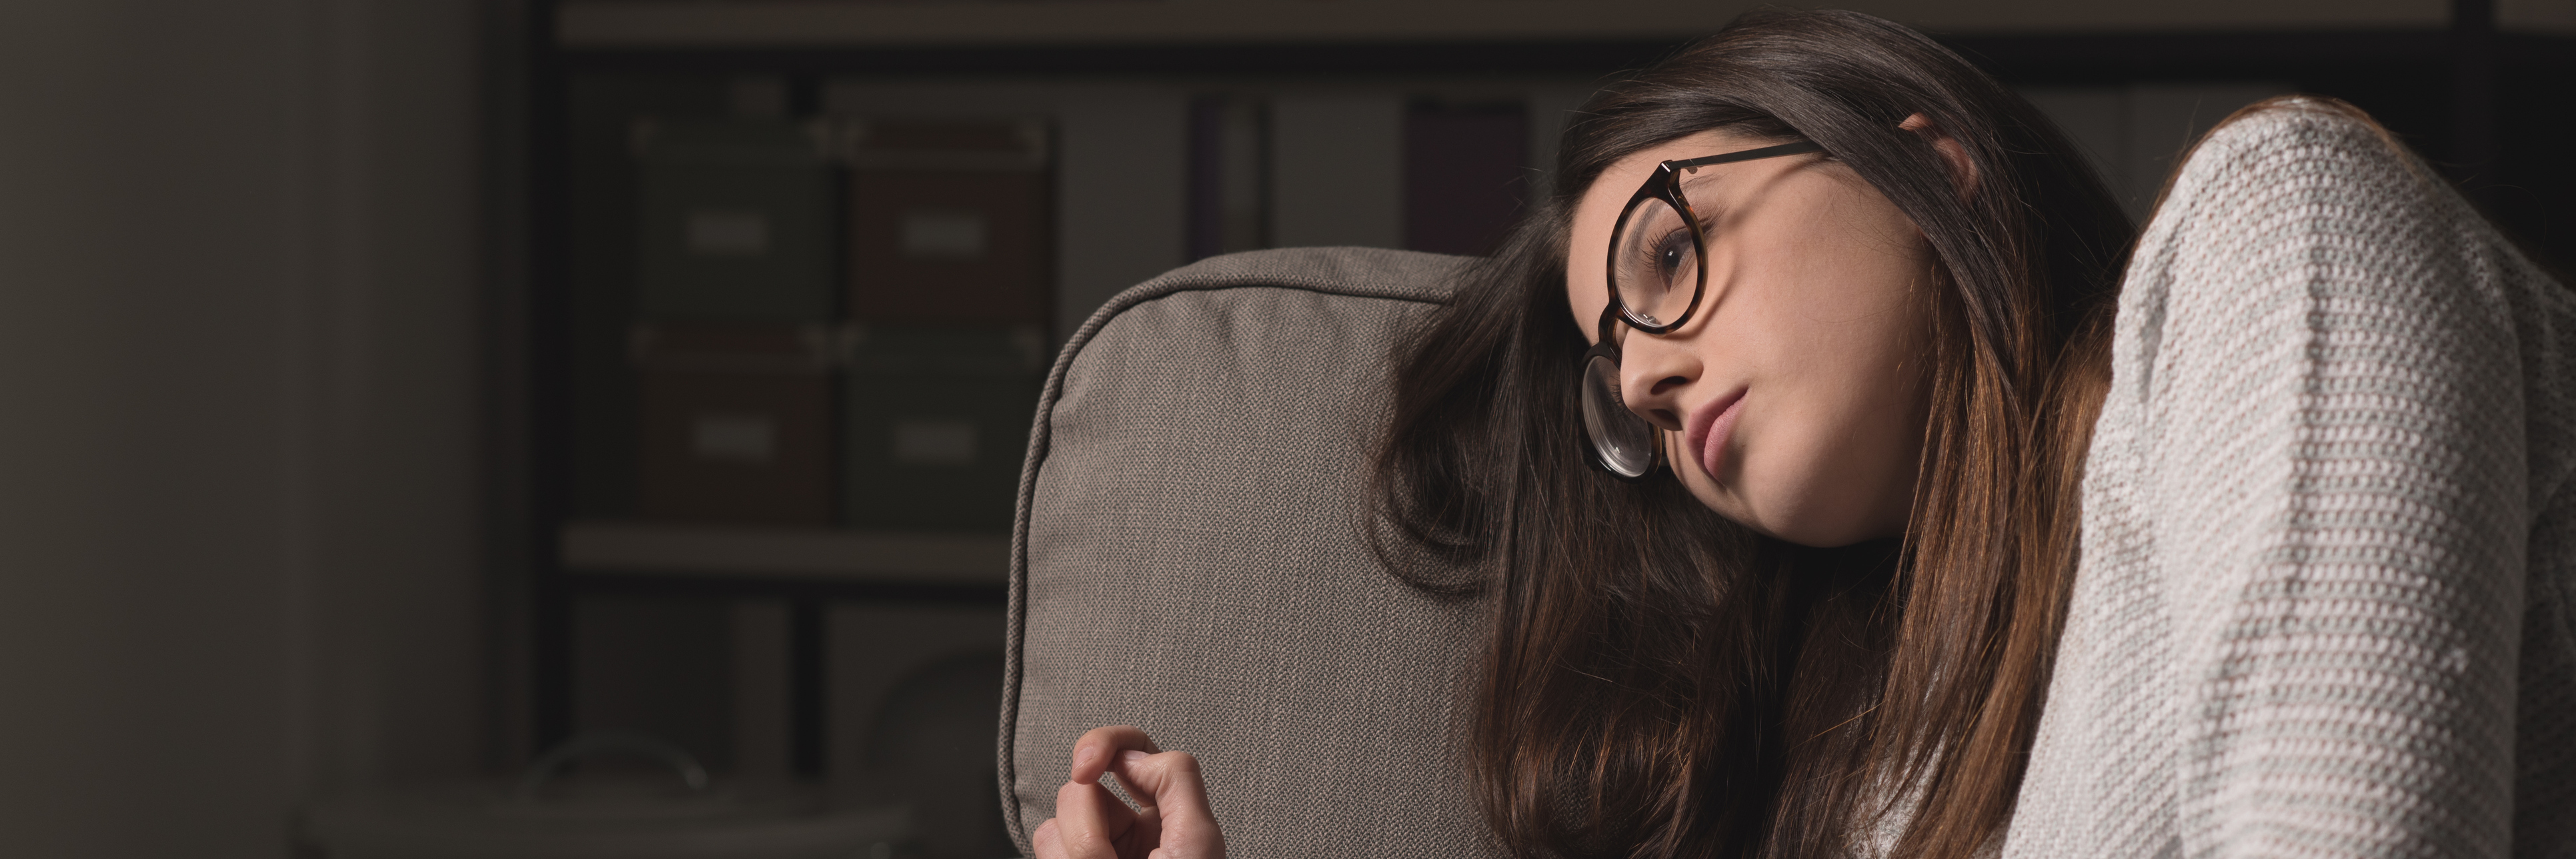 sad young woman with glasses sitting on couch at home exhausted